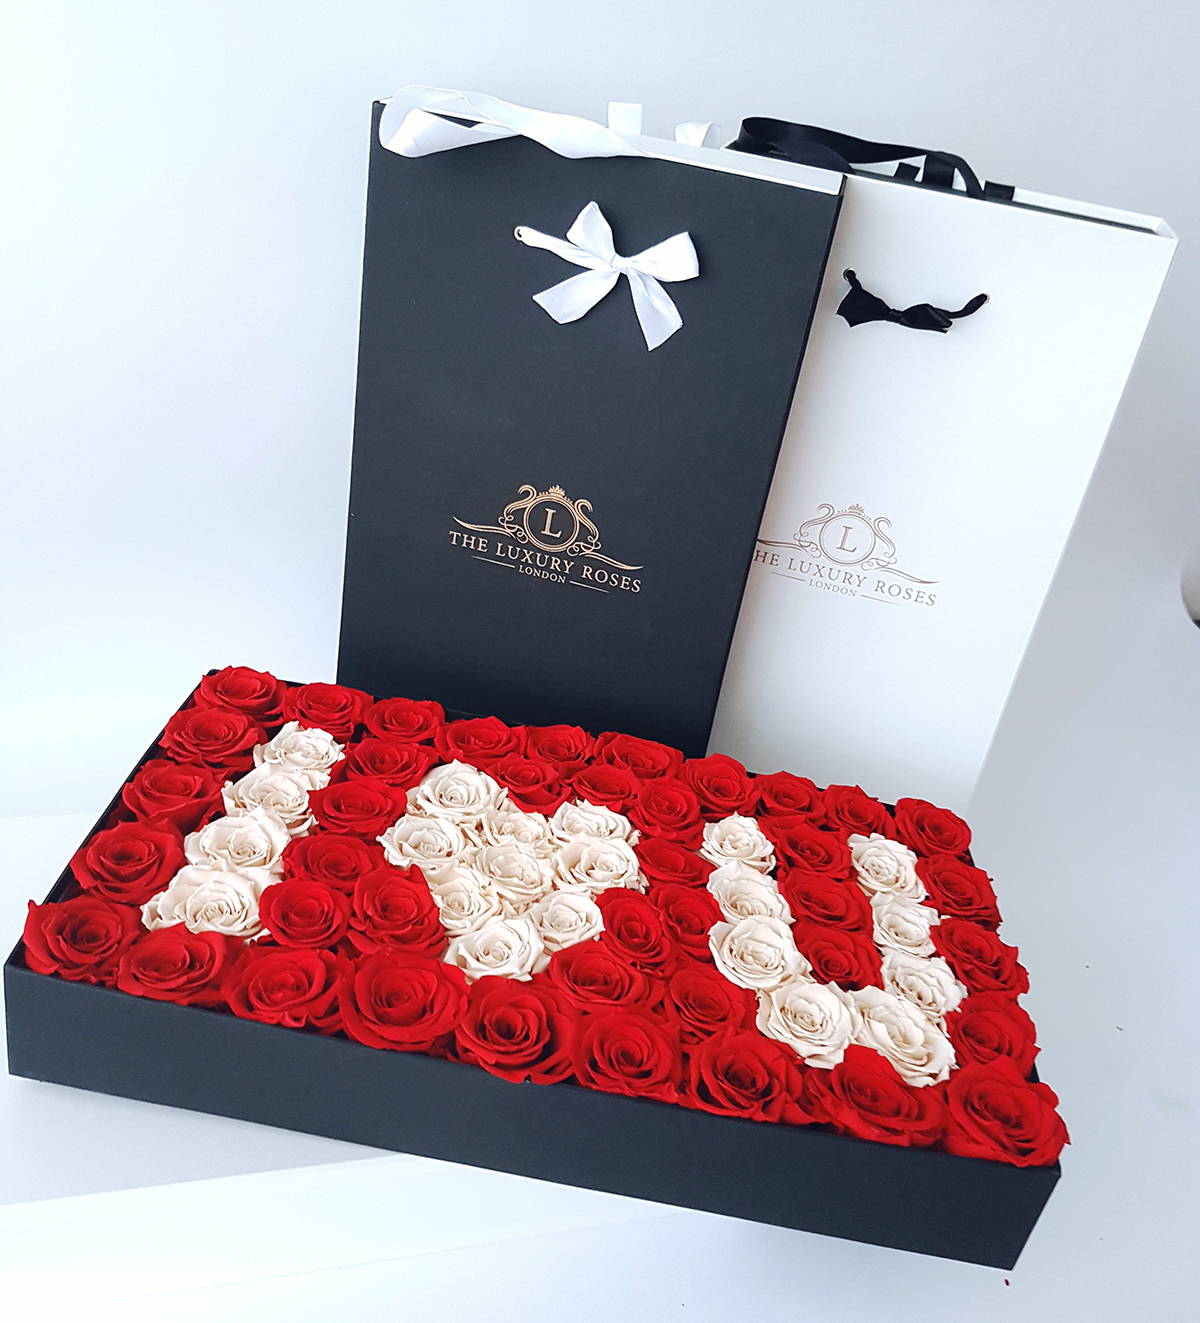 The Luxury Roses London - customized rose box design